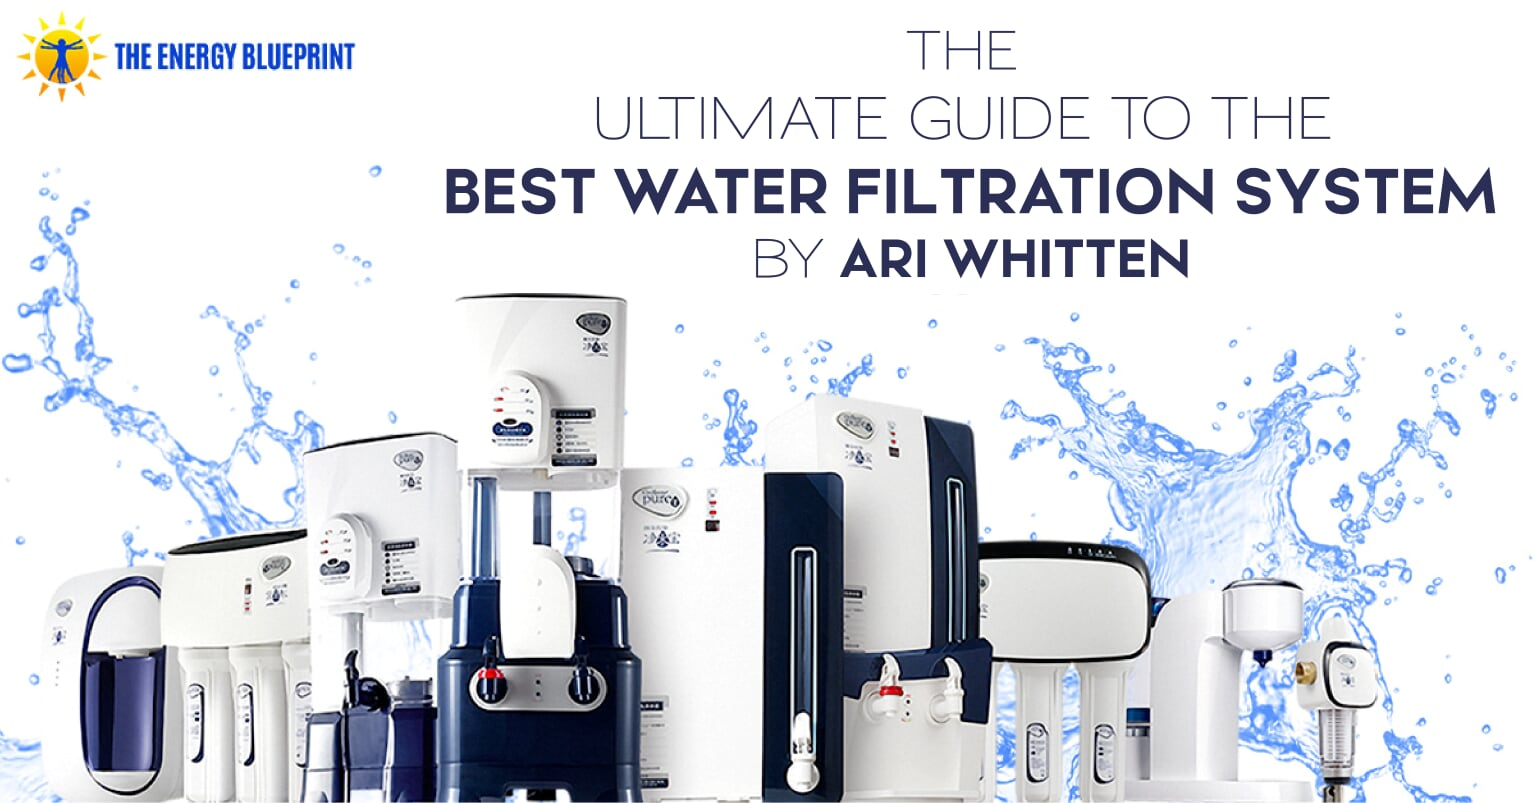 The Best Water Filtration System With Ari Whitten